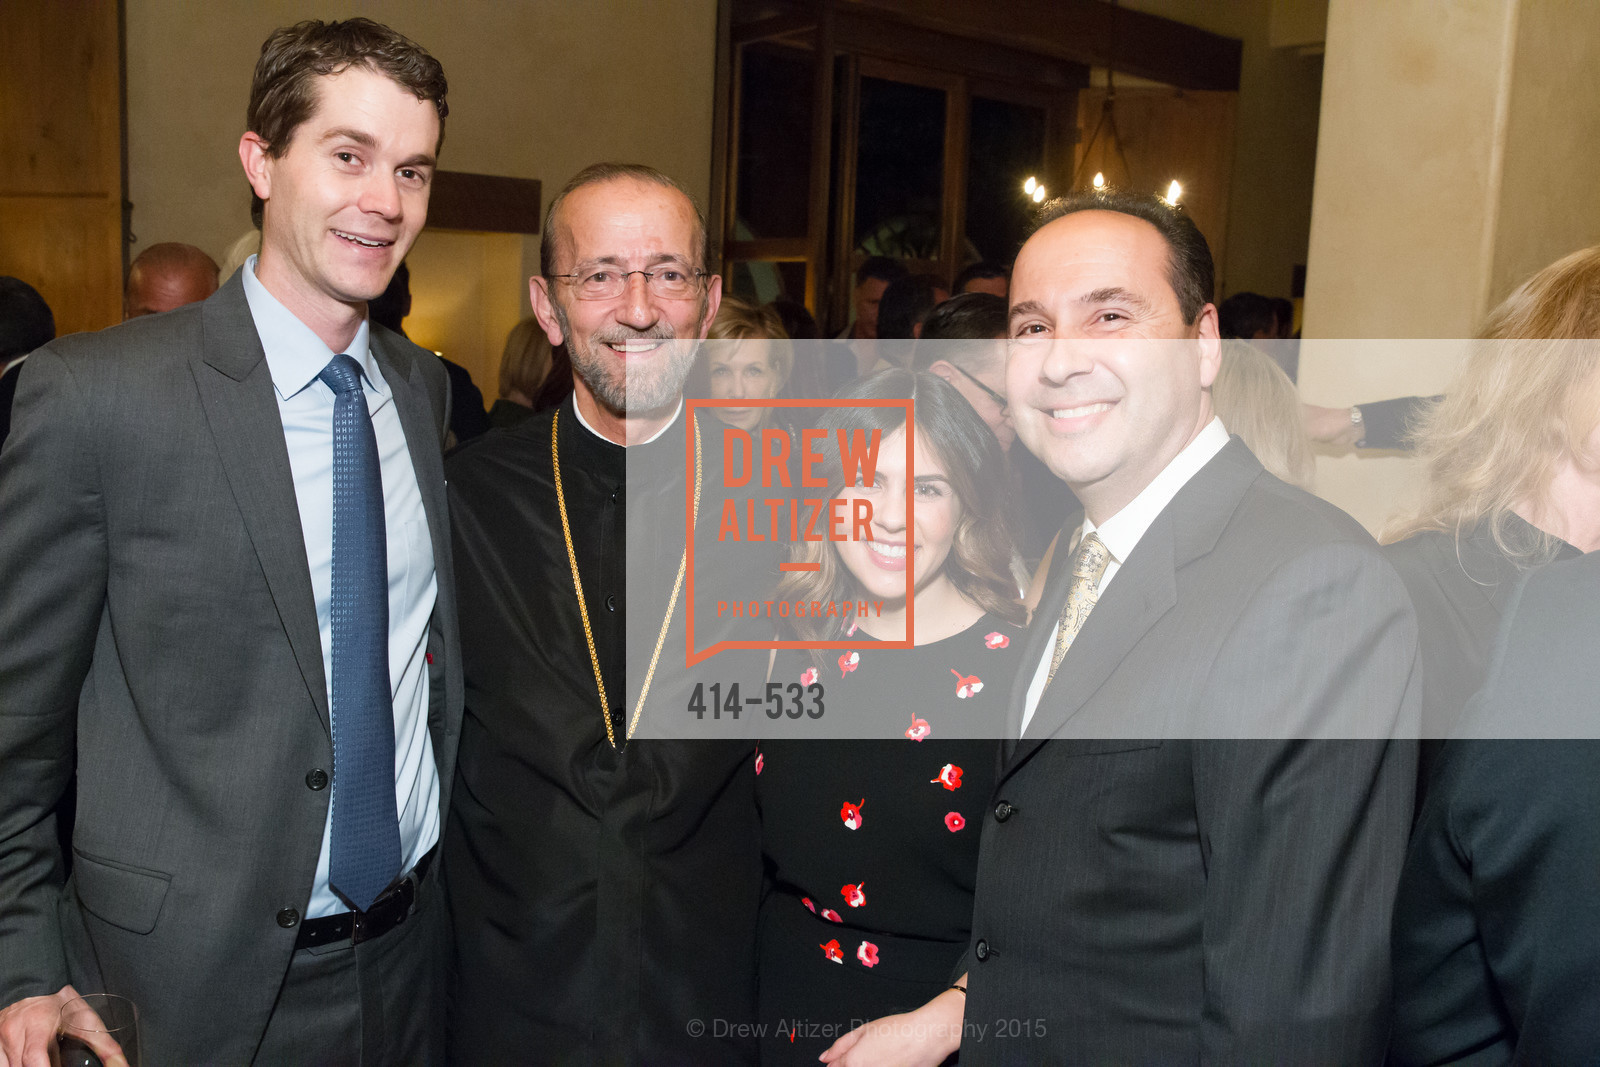 Michael Cella, Metropolitan Gerasimos, Victoria Cella, Gary Vrionis, Hellenic Charity Ball Cocktail Reception, Kokkari. 200 Jackson St, San Francisco, CA 94111, November 13th, 2015,Drew Altizer, Drew Altizer Photography, full-service agency, private events, San Francisco photographer, photographer california